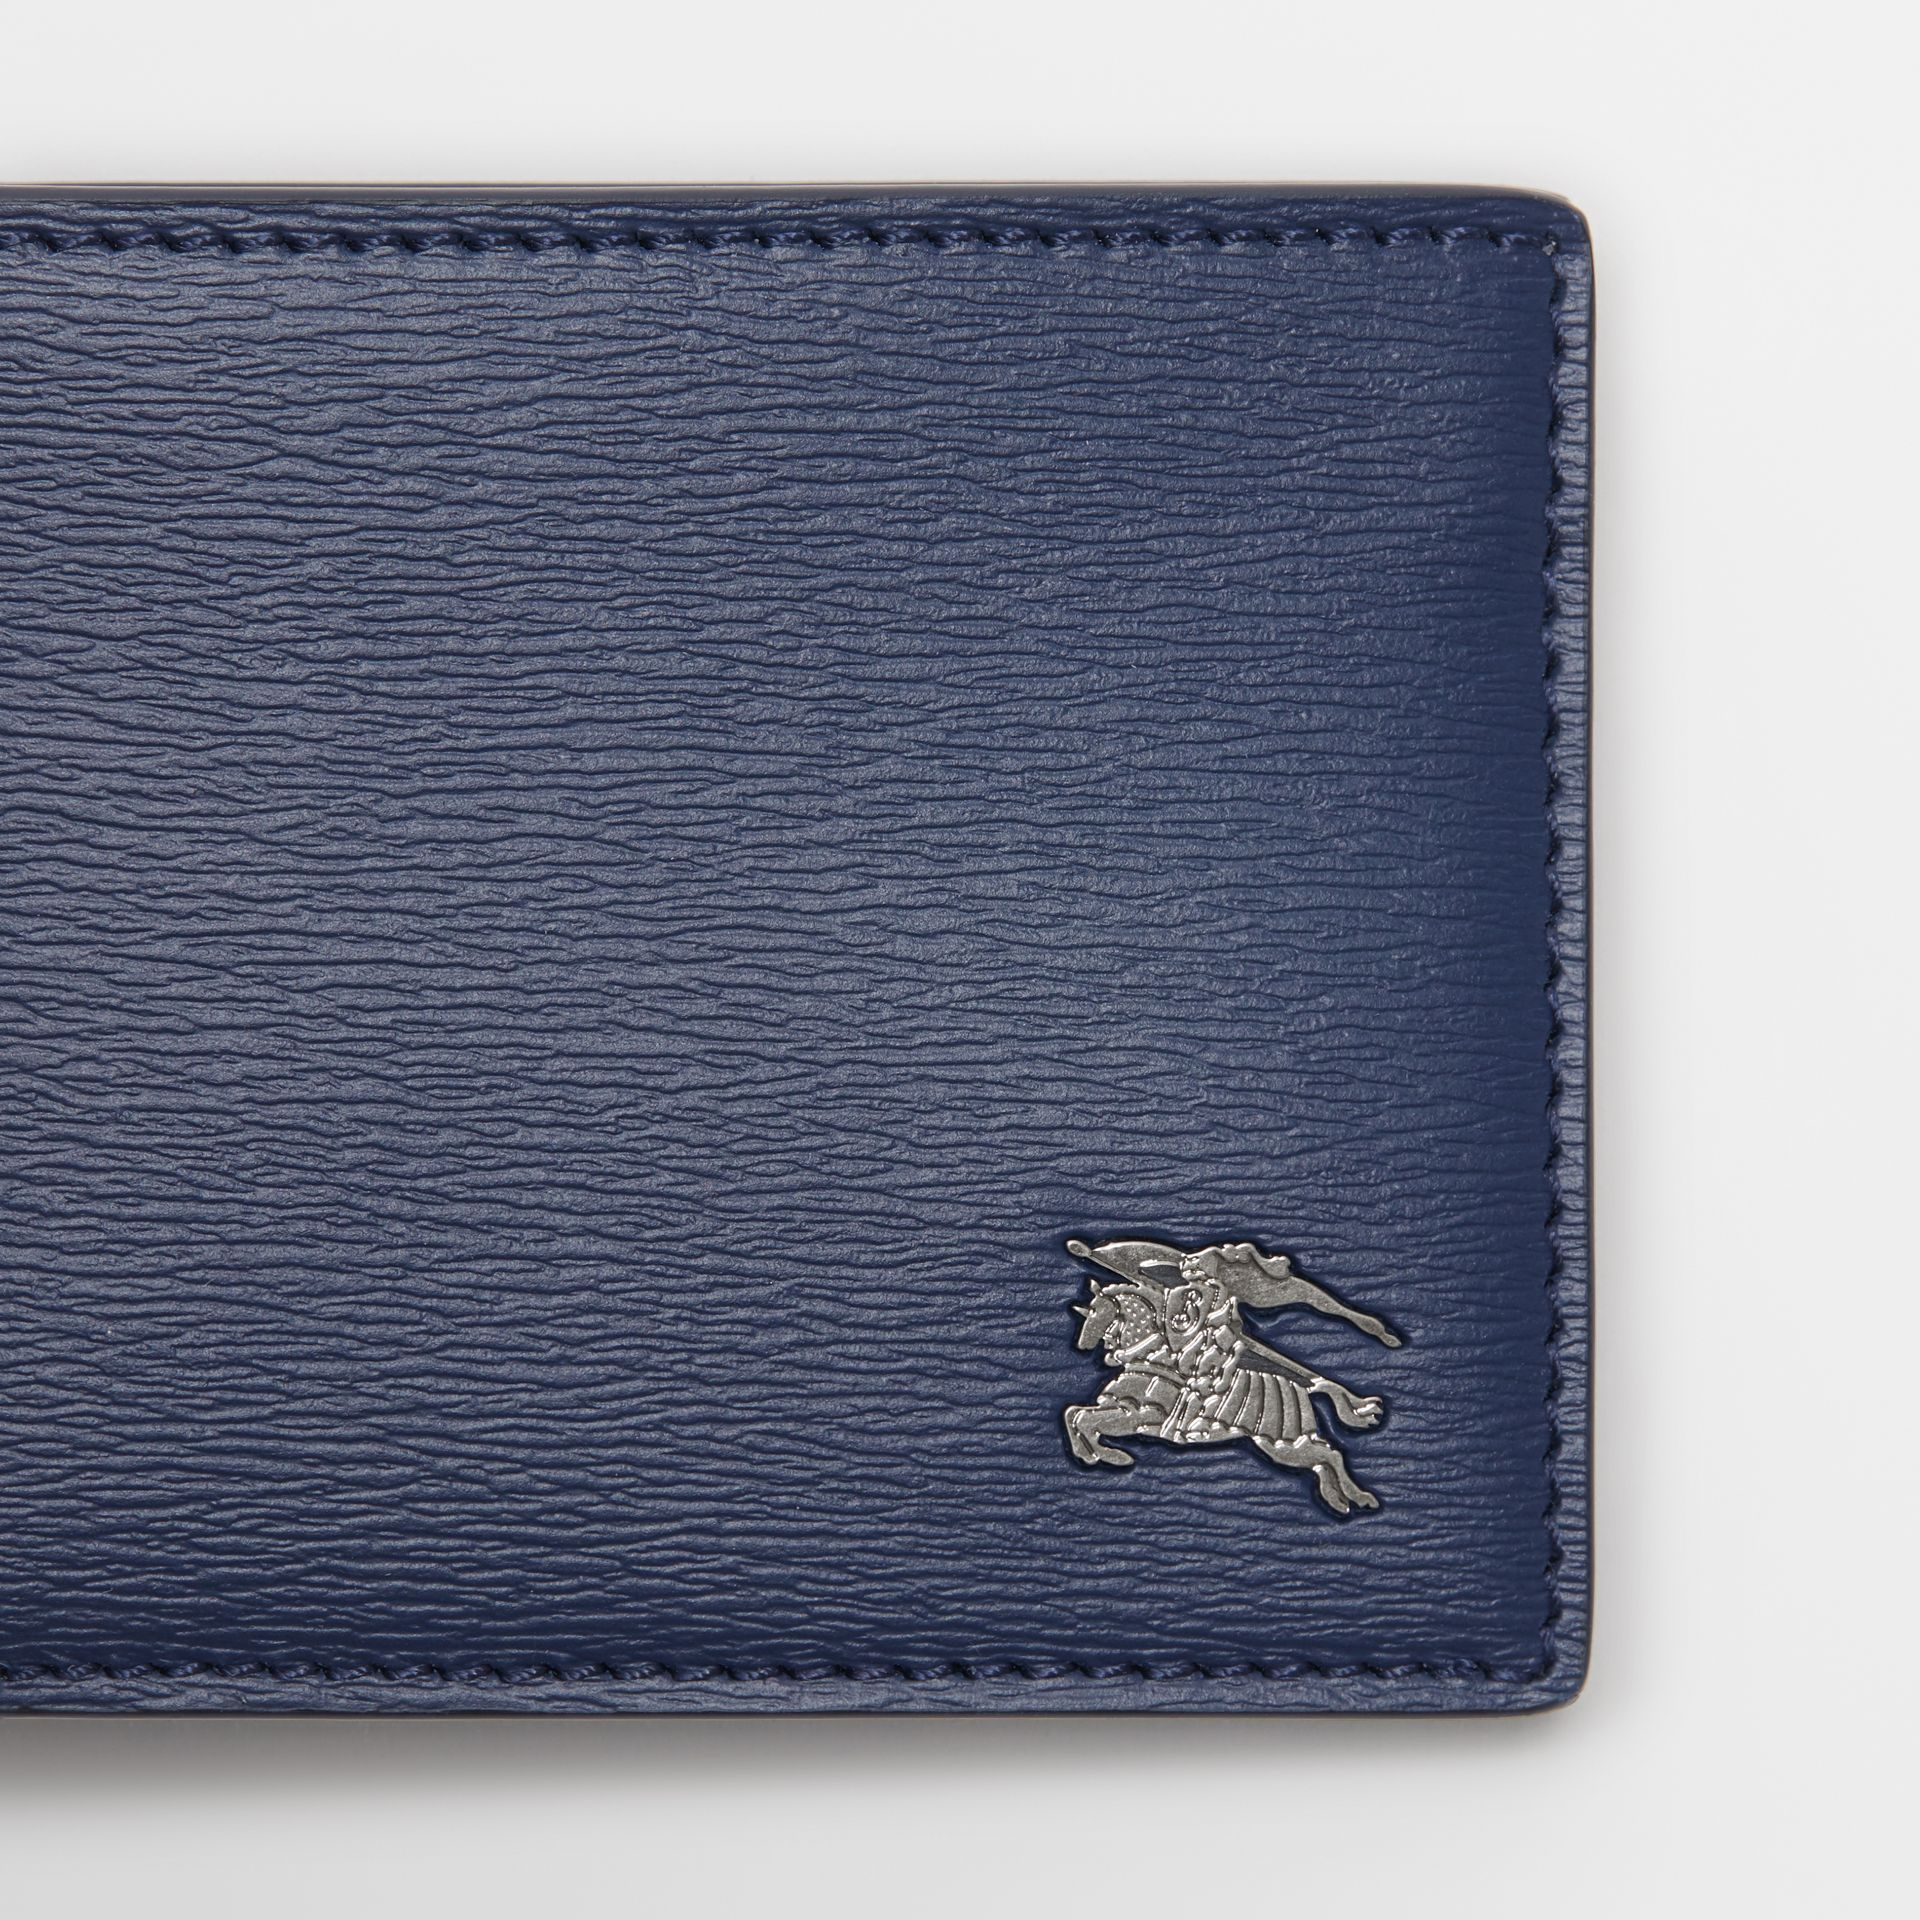 London Leather Bifold Wallet in Navy - Men | Burberry - gallery image 1